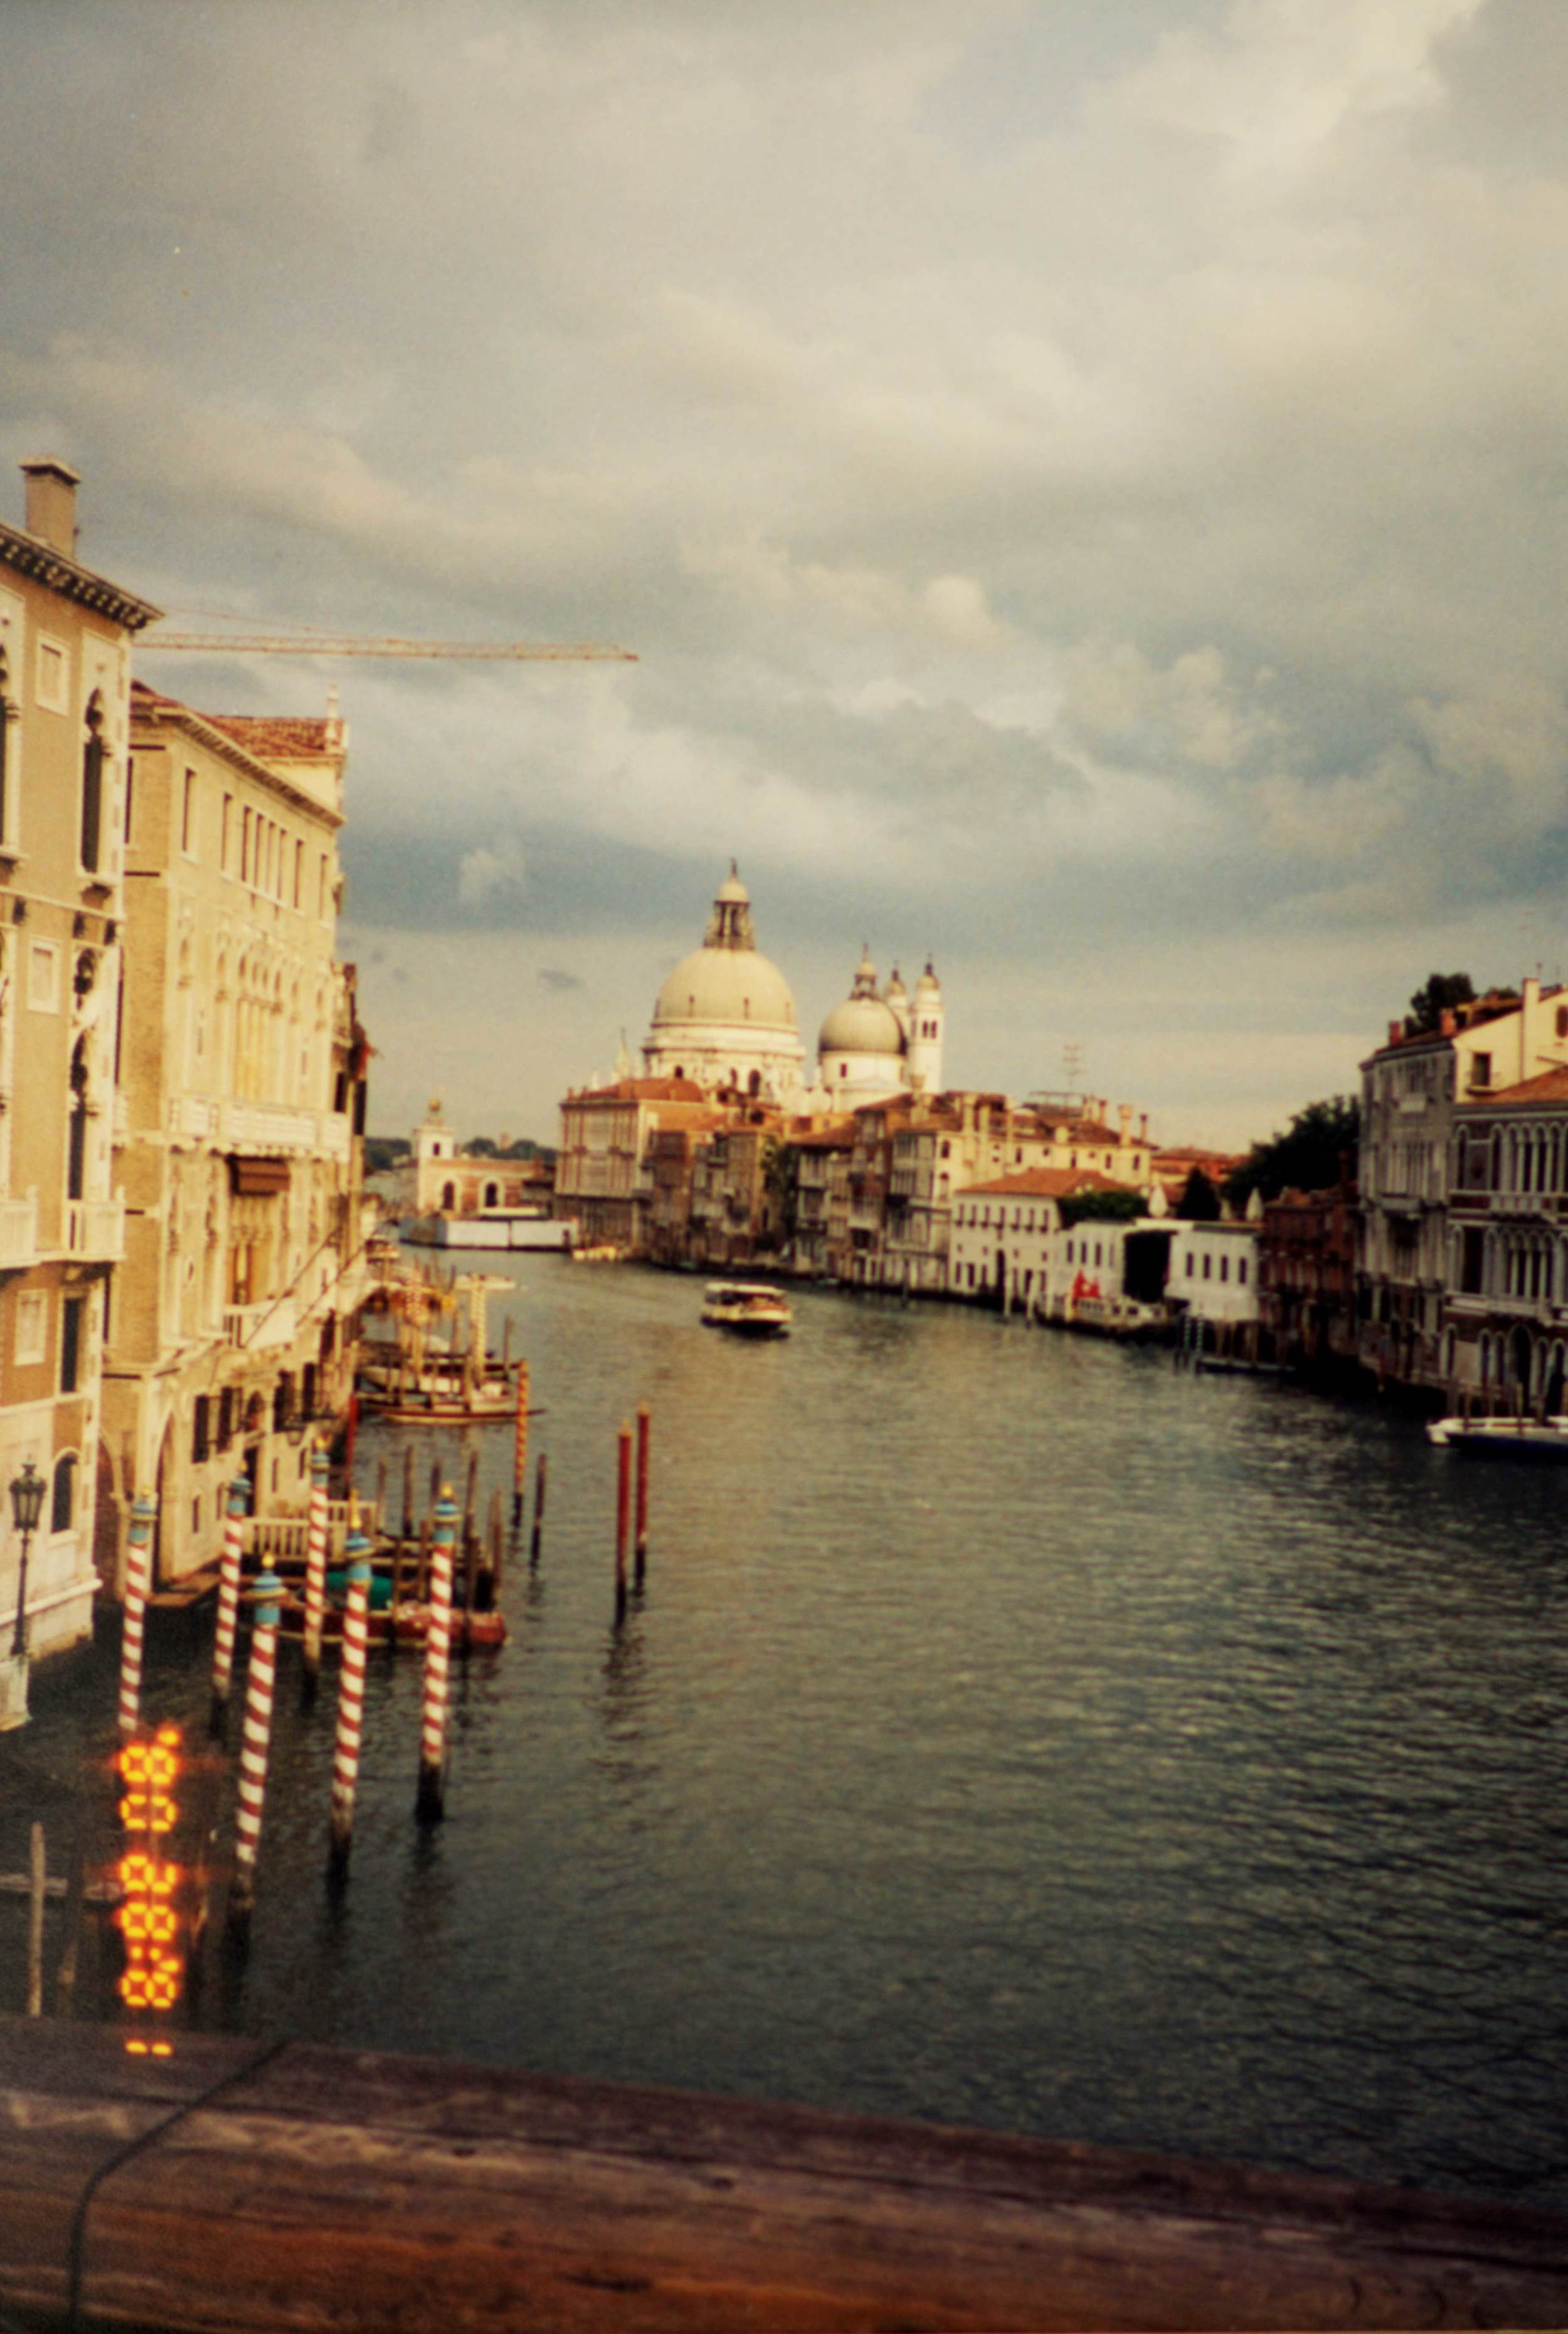 Venice, Italy. Image©sourcingstyle.com